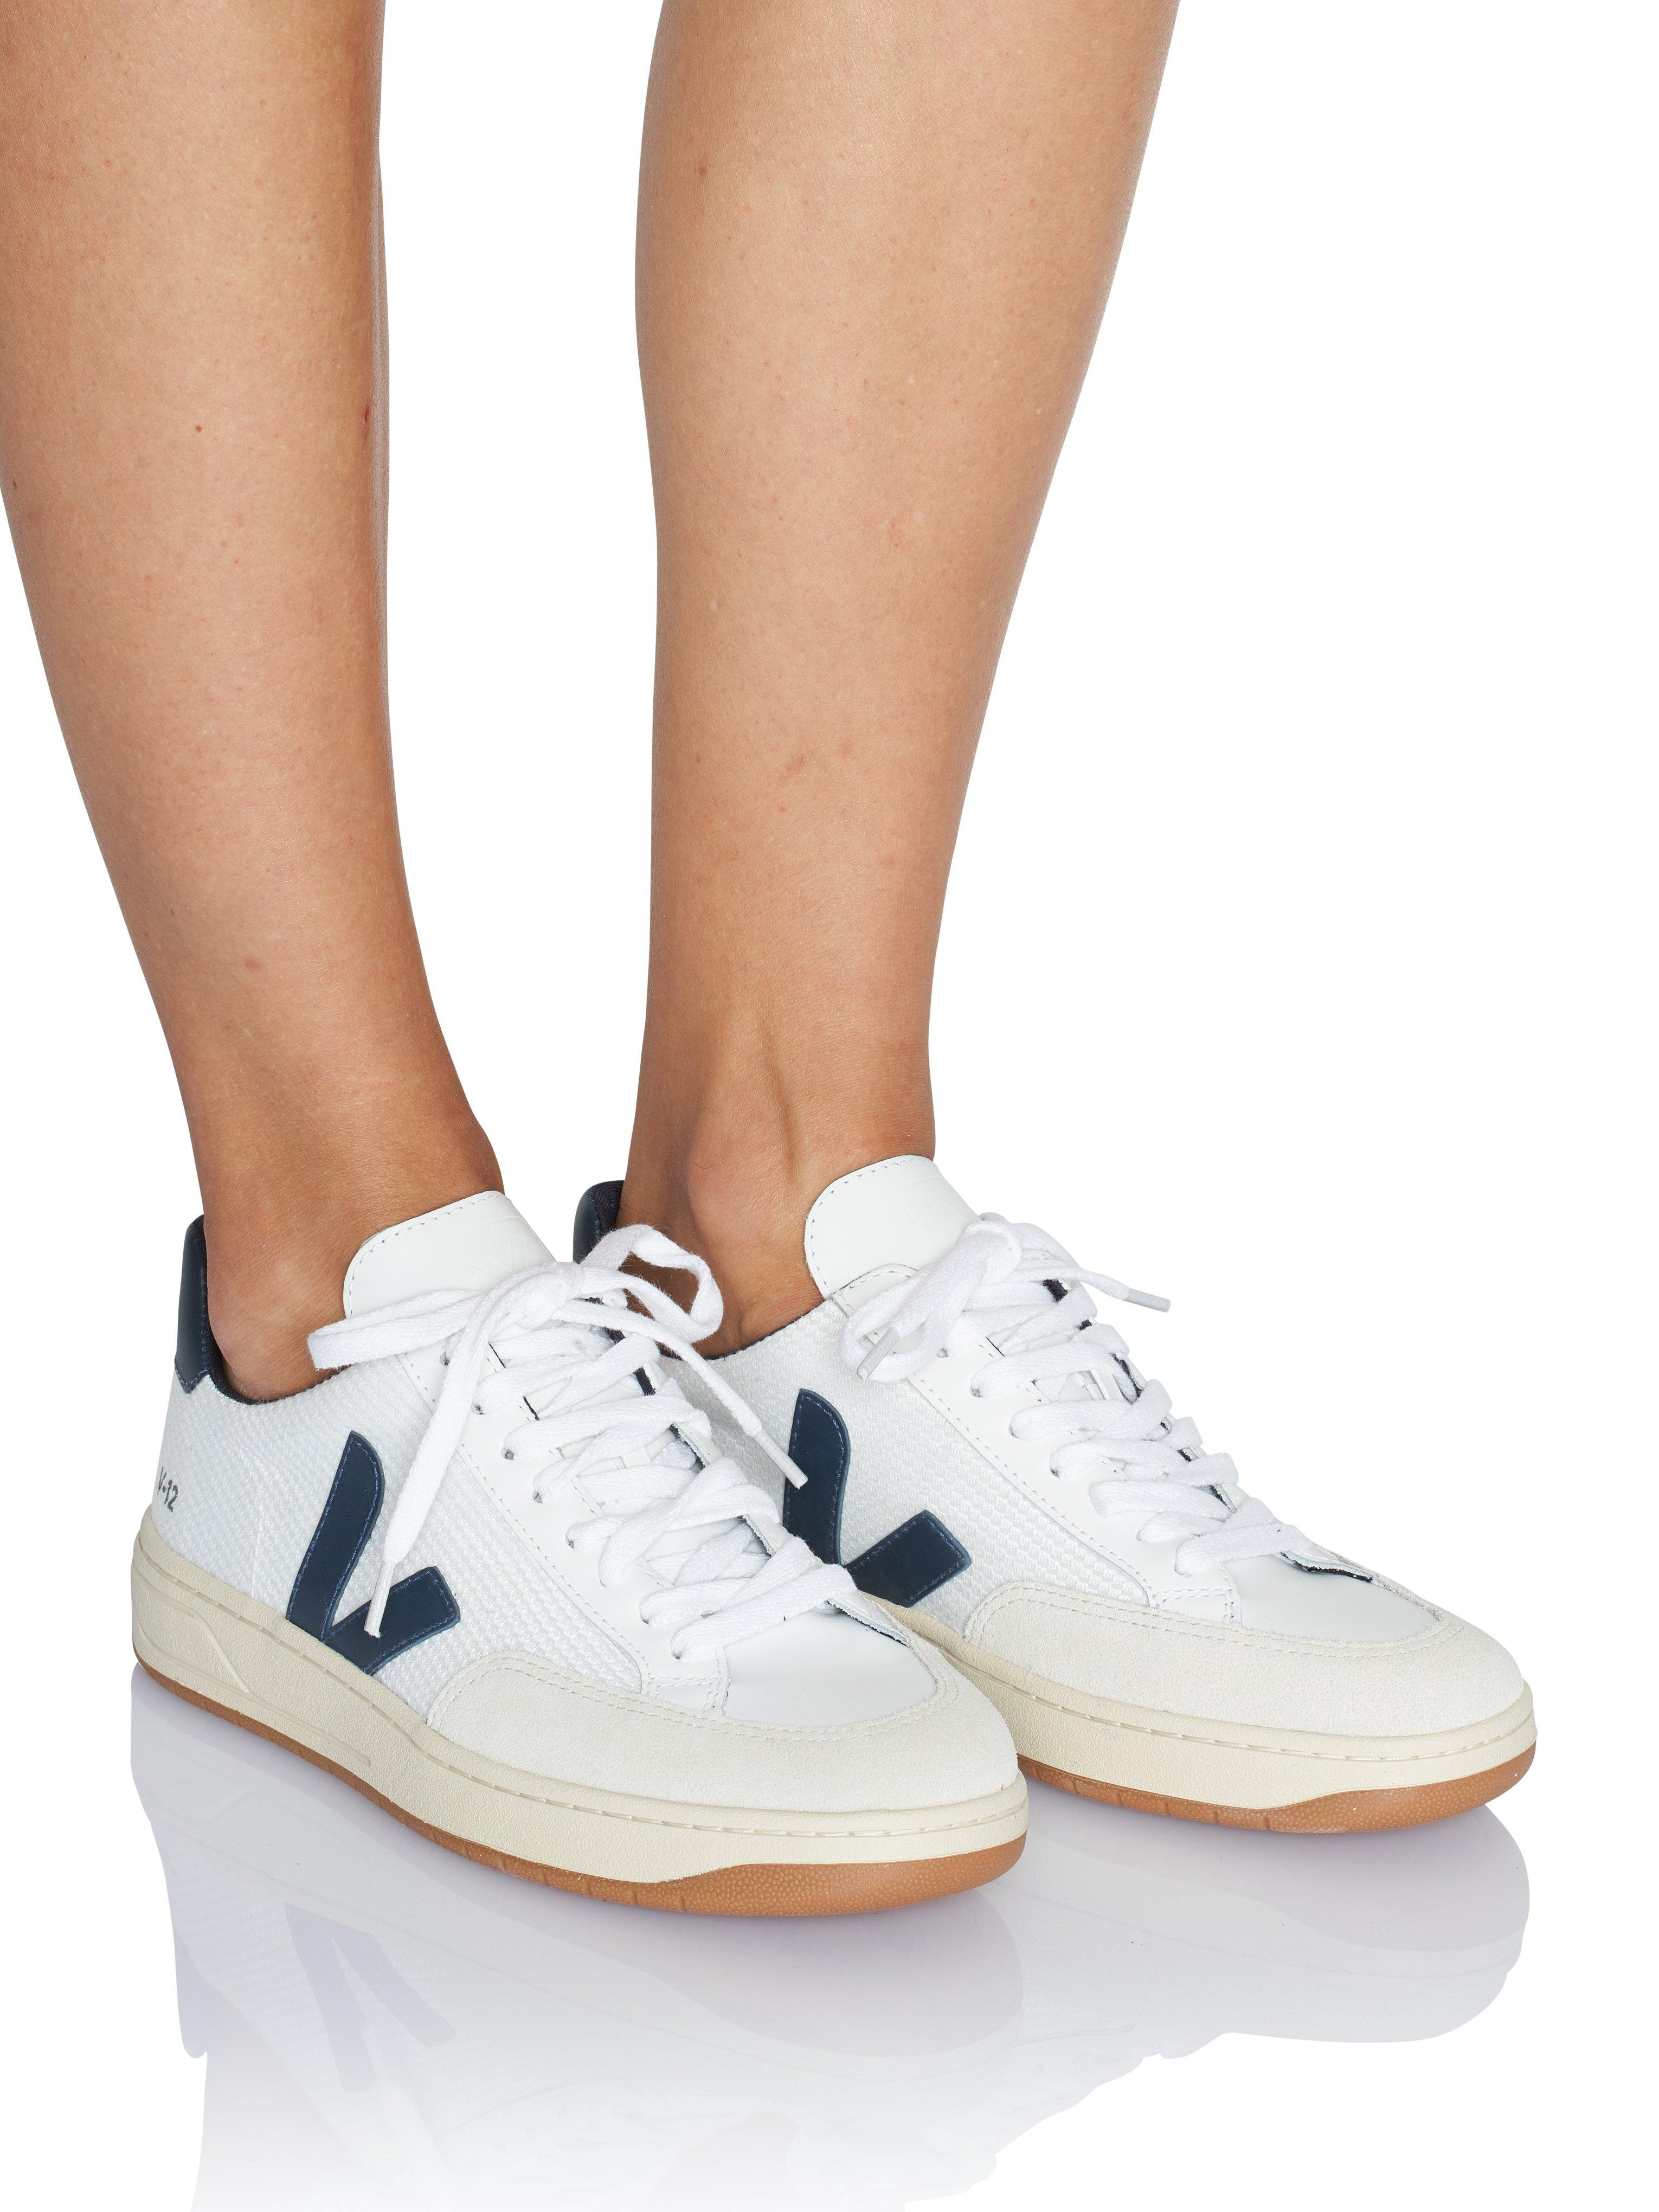 Chaussures Veja / VOLLEY / Lacets Blanc Toile Coton